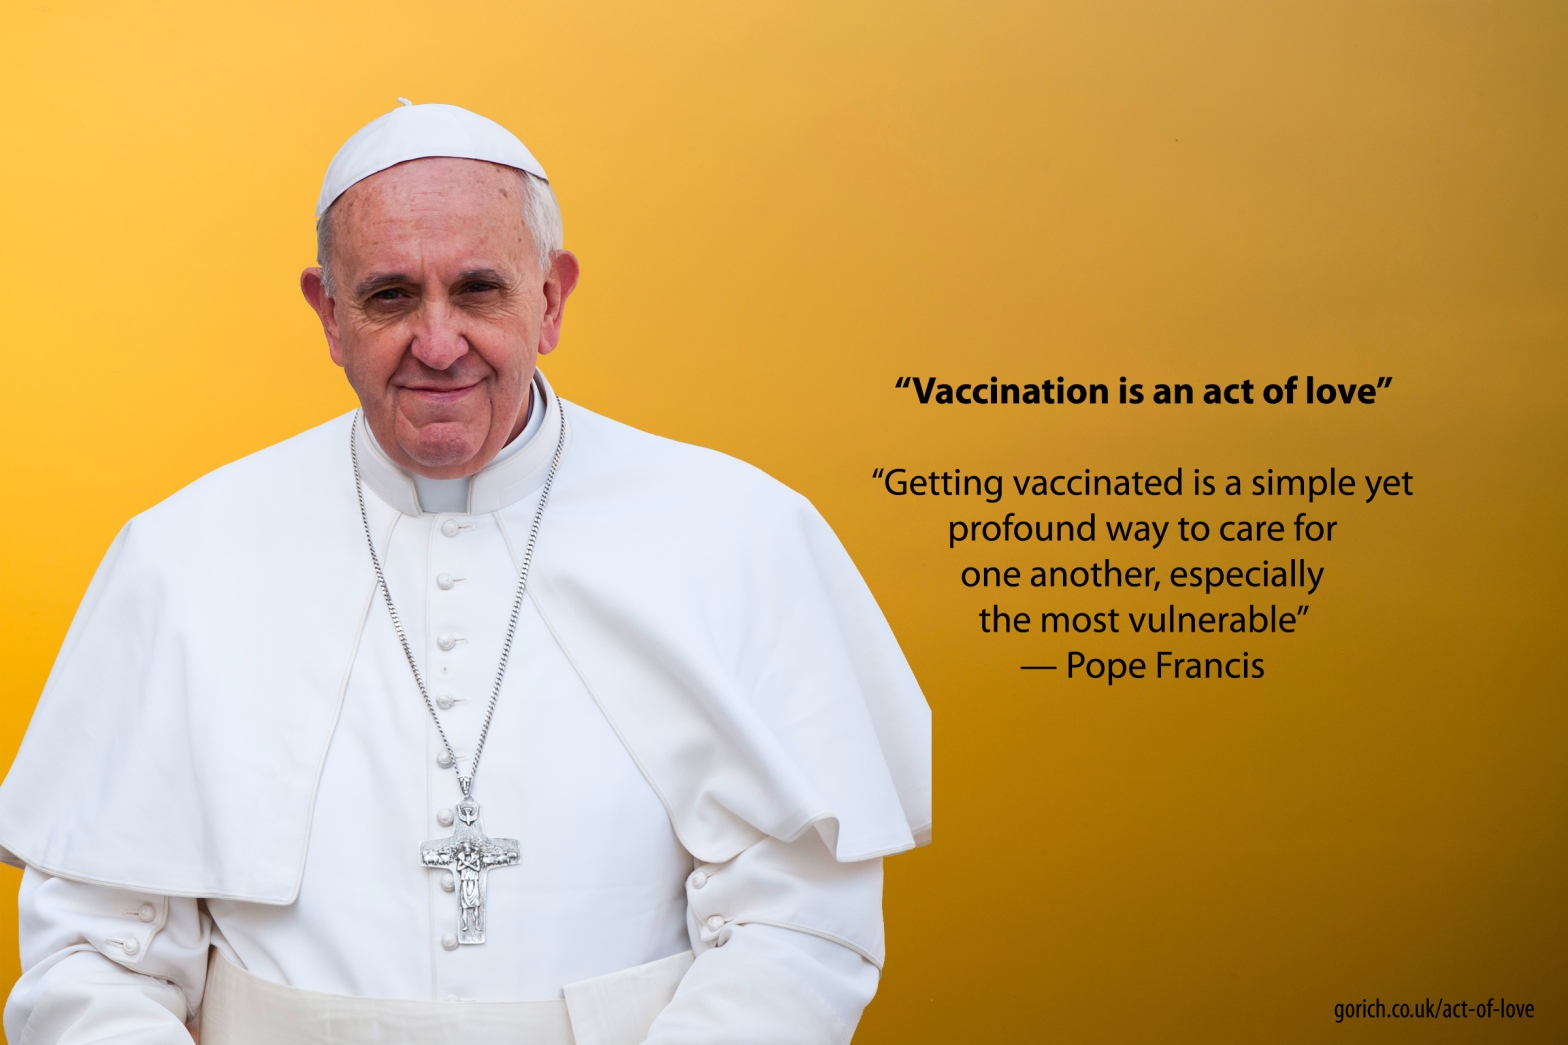 Vaccines are an act of love